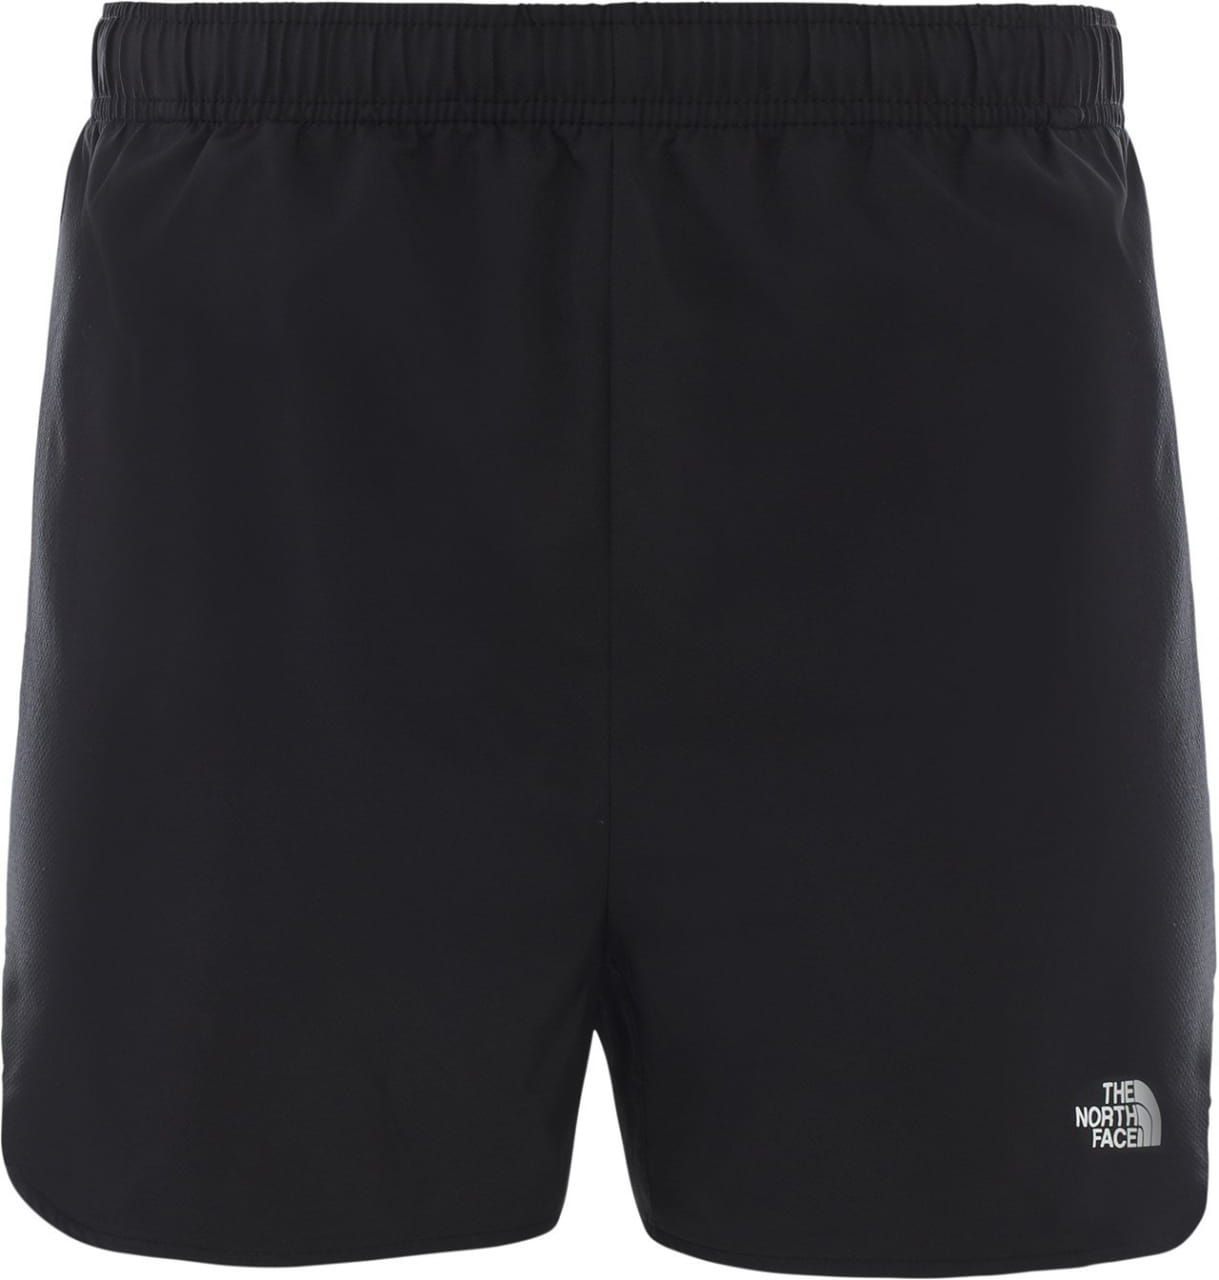 Dámské kraťasy The North Face Women's Active Trail Running Shorts